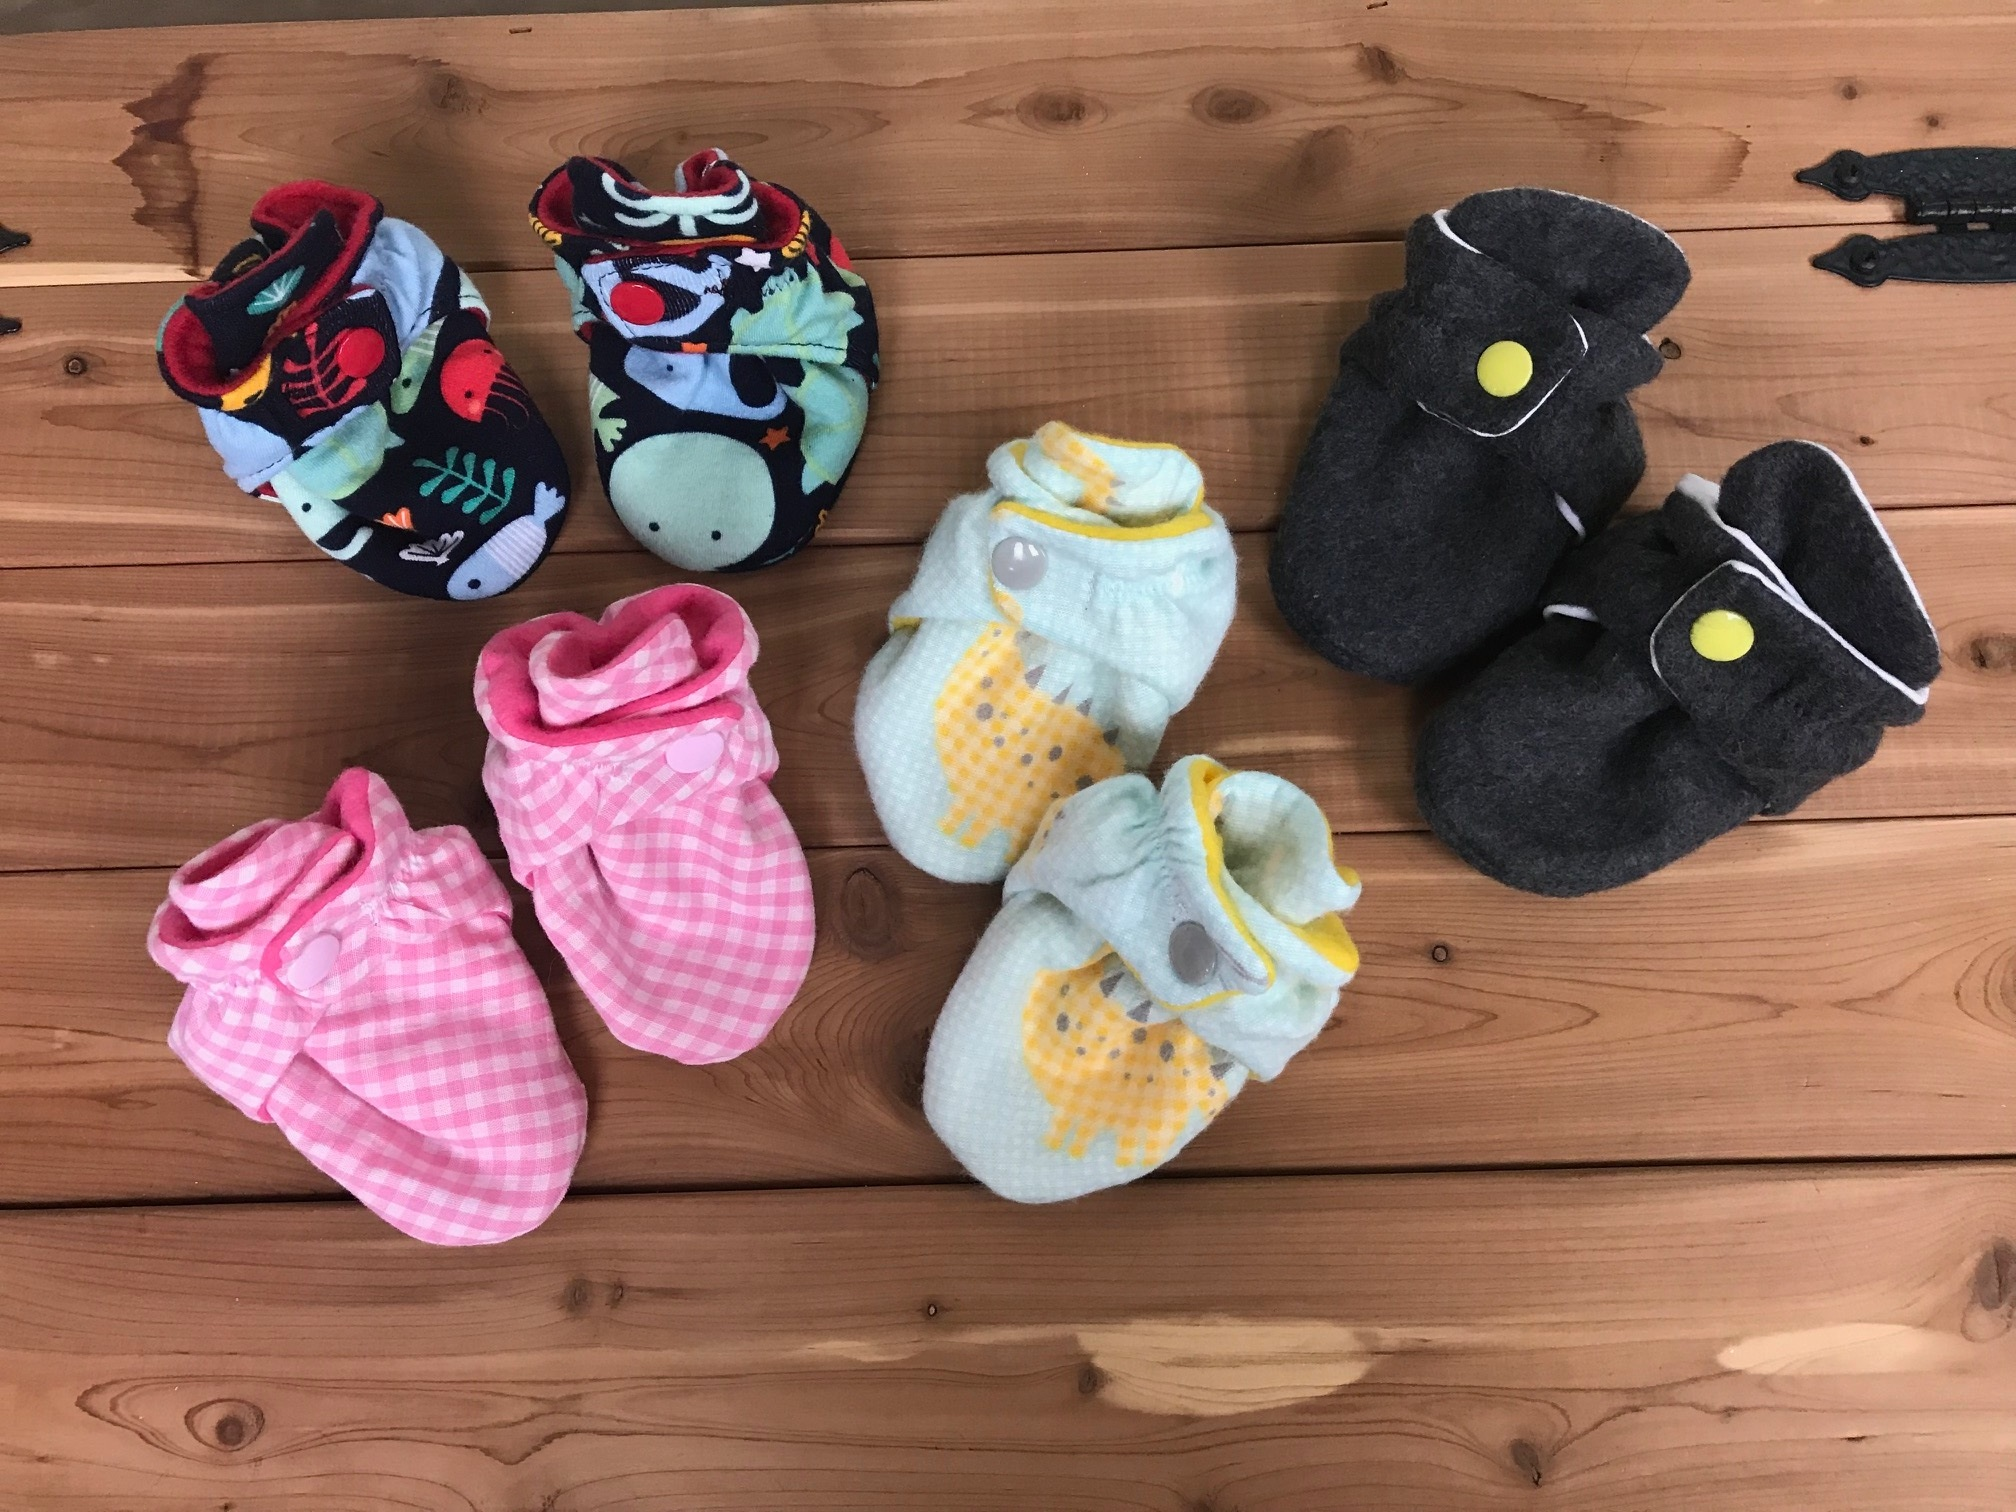 Booties - Cute booties for infants. Soft and comfortable with a snapped closure.